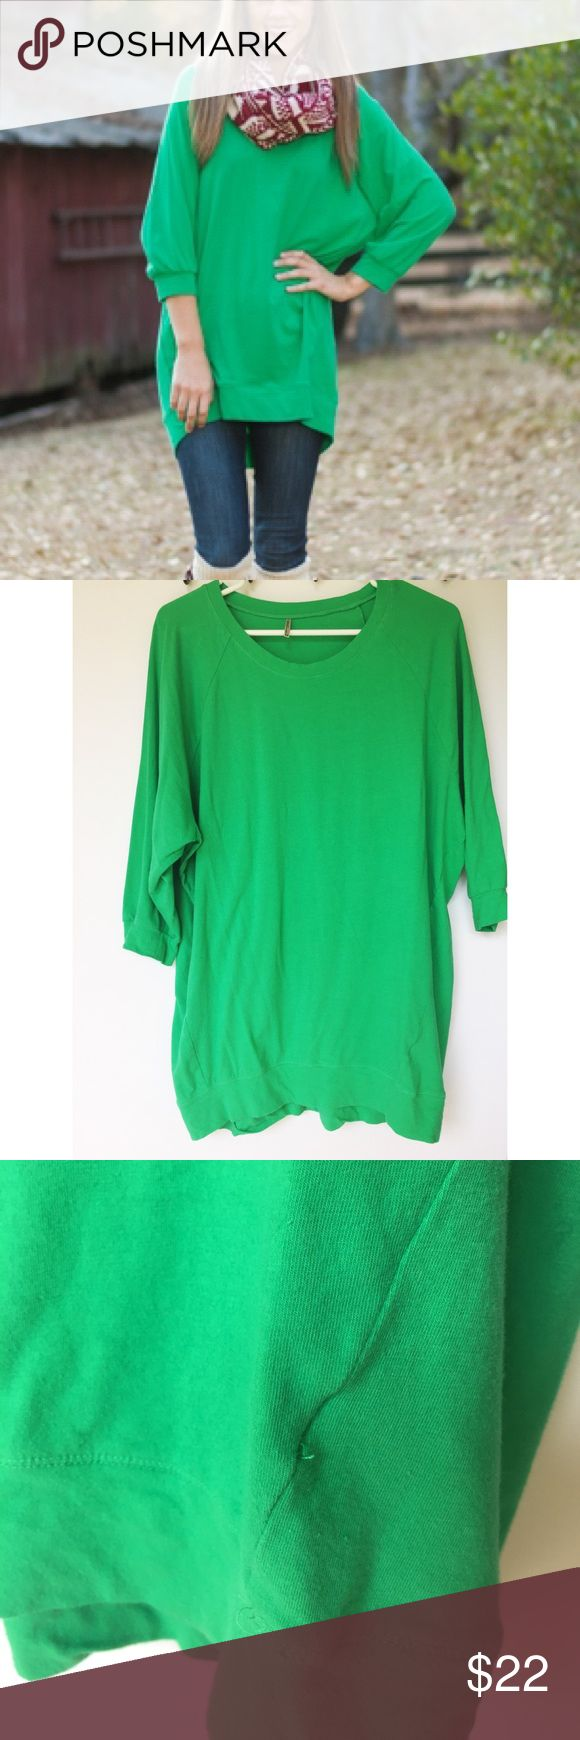 Green tunic Cute green tunic from Mint Julep. Brand is tresics. There is a small stain on the front which is considered in the price. Light fraying of some threads. Runs a little loose Tresics Tops Tunics